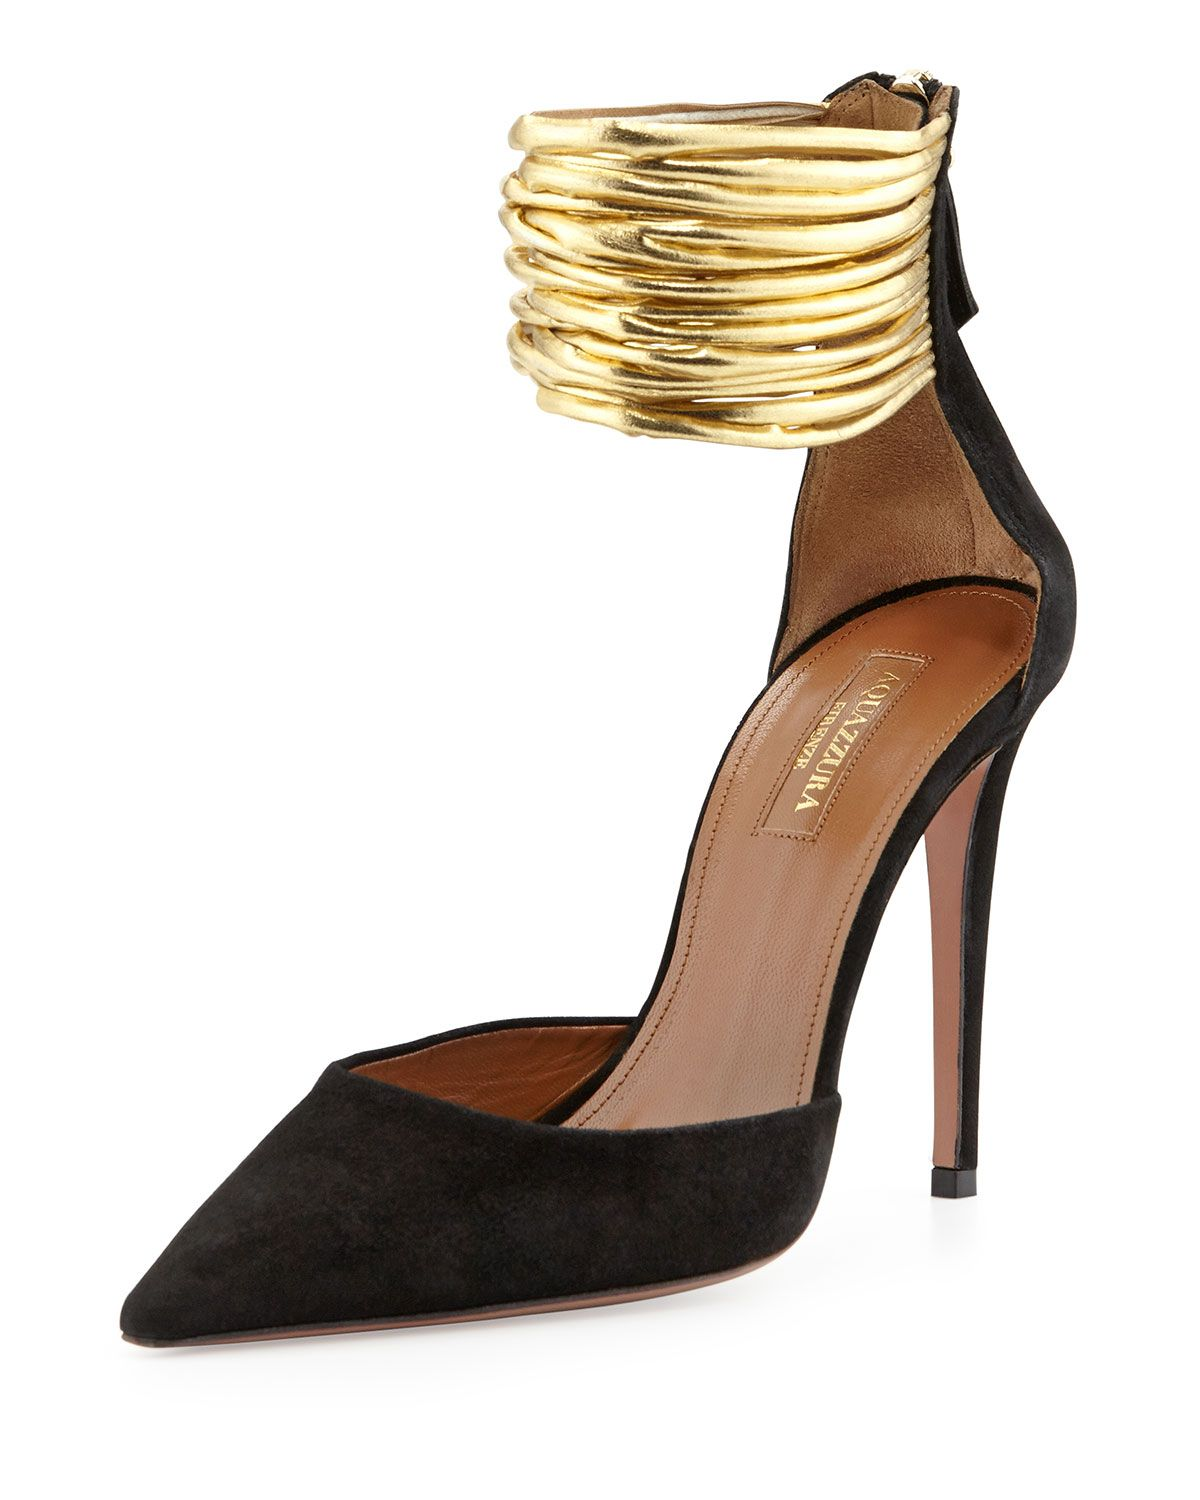 Hello Lover Suede Ankle-Strap Pump, Black | Gold bands, Ankle and ...